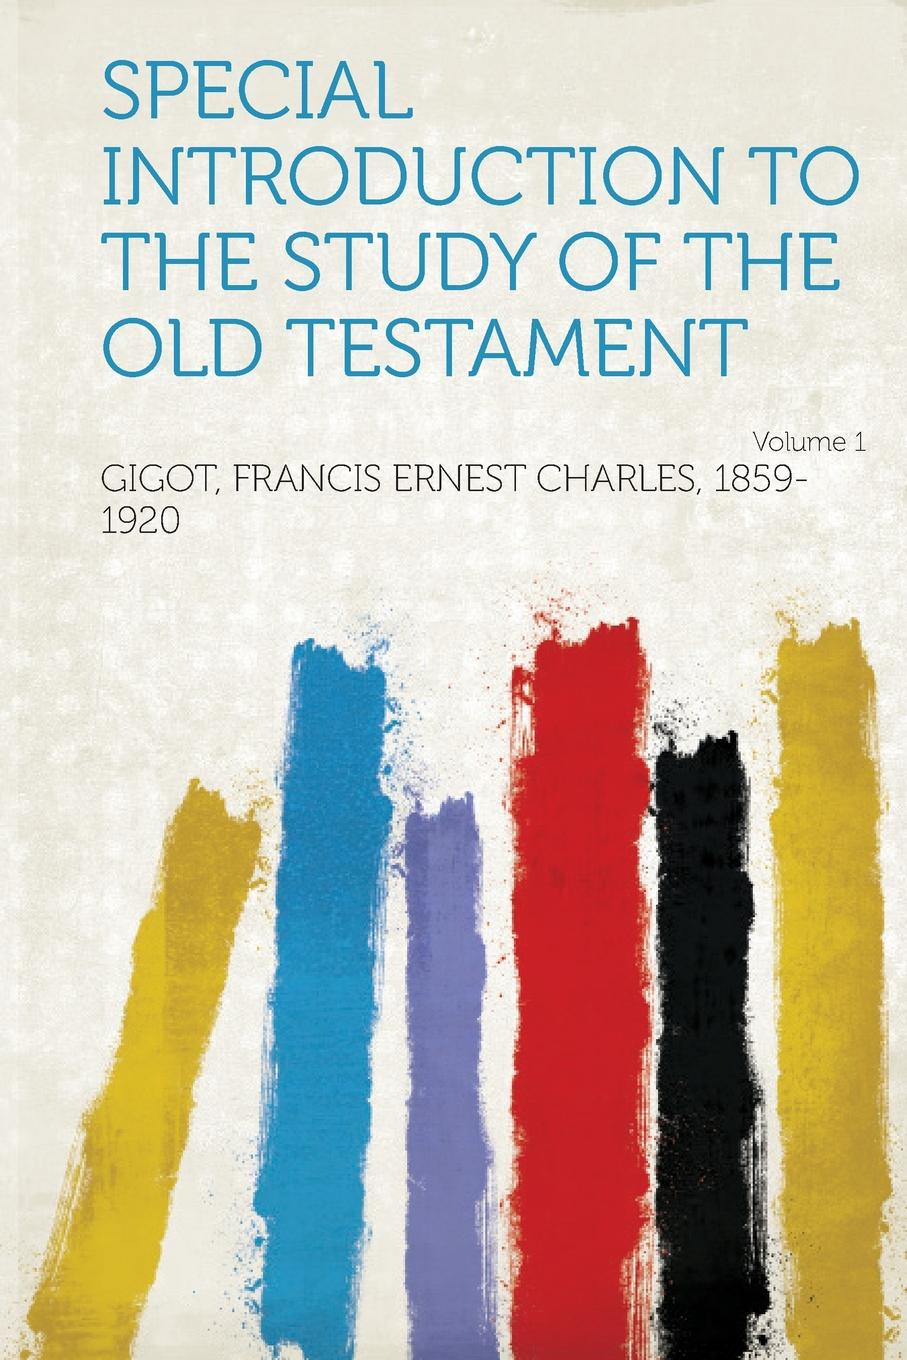 Gigot Francis Ernest Charles 1859-1920 Special Introduction to the Study of the Old Testament Volume 1 sir lancelot charles lee brenton the septuagint version of the old testament volume 1